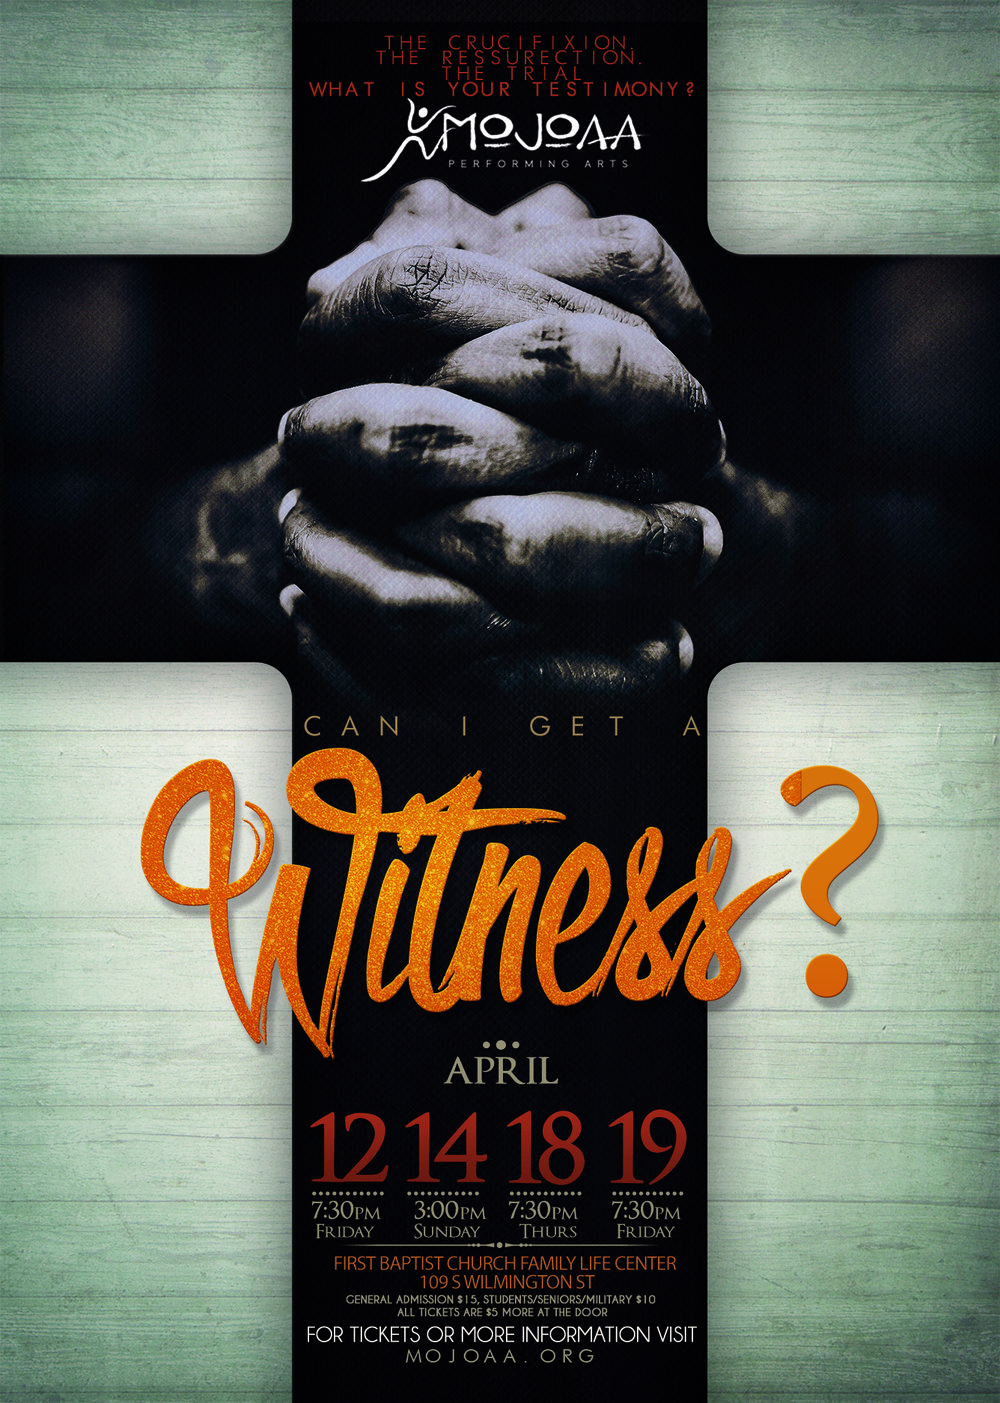 Can I Get A Witness? - Presented by MOJOAA Performing Arts Company